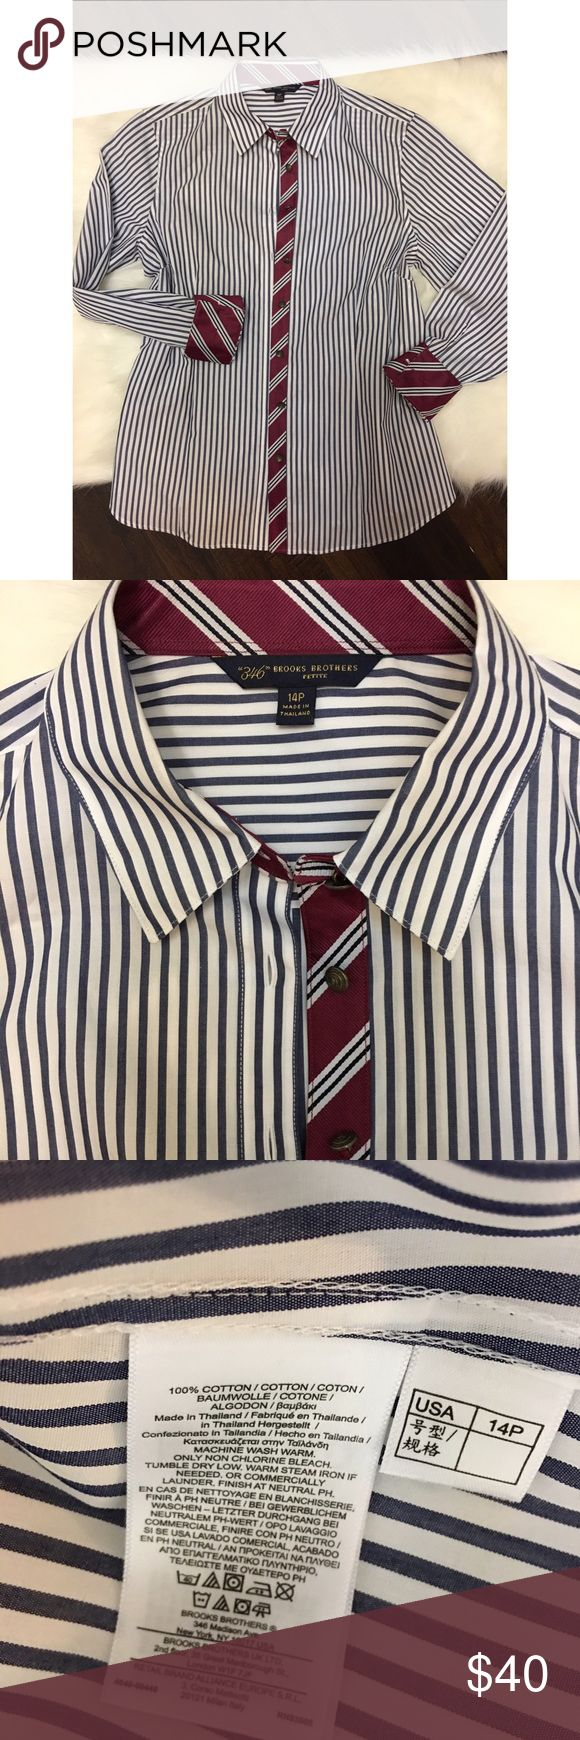 CYBER MONDAY SALE ⚡️Brooks brothers women's oxford So classic and smart! Brooks brothers striped button down blouse with the perfect trim detailing and buttons. Excellent condition, looks new. Brooks Brothers Tops Button Down Shirts